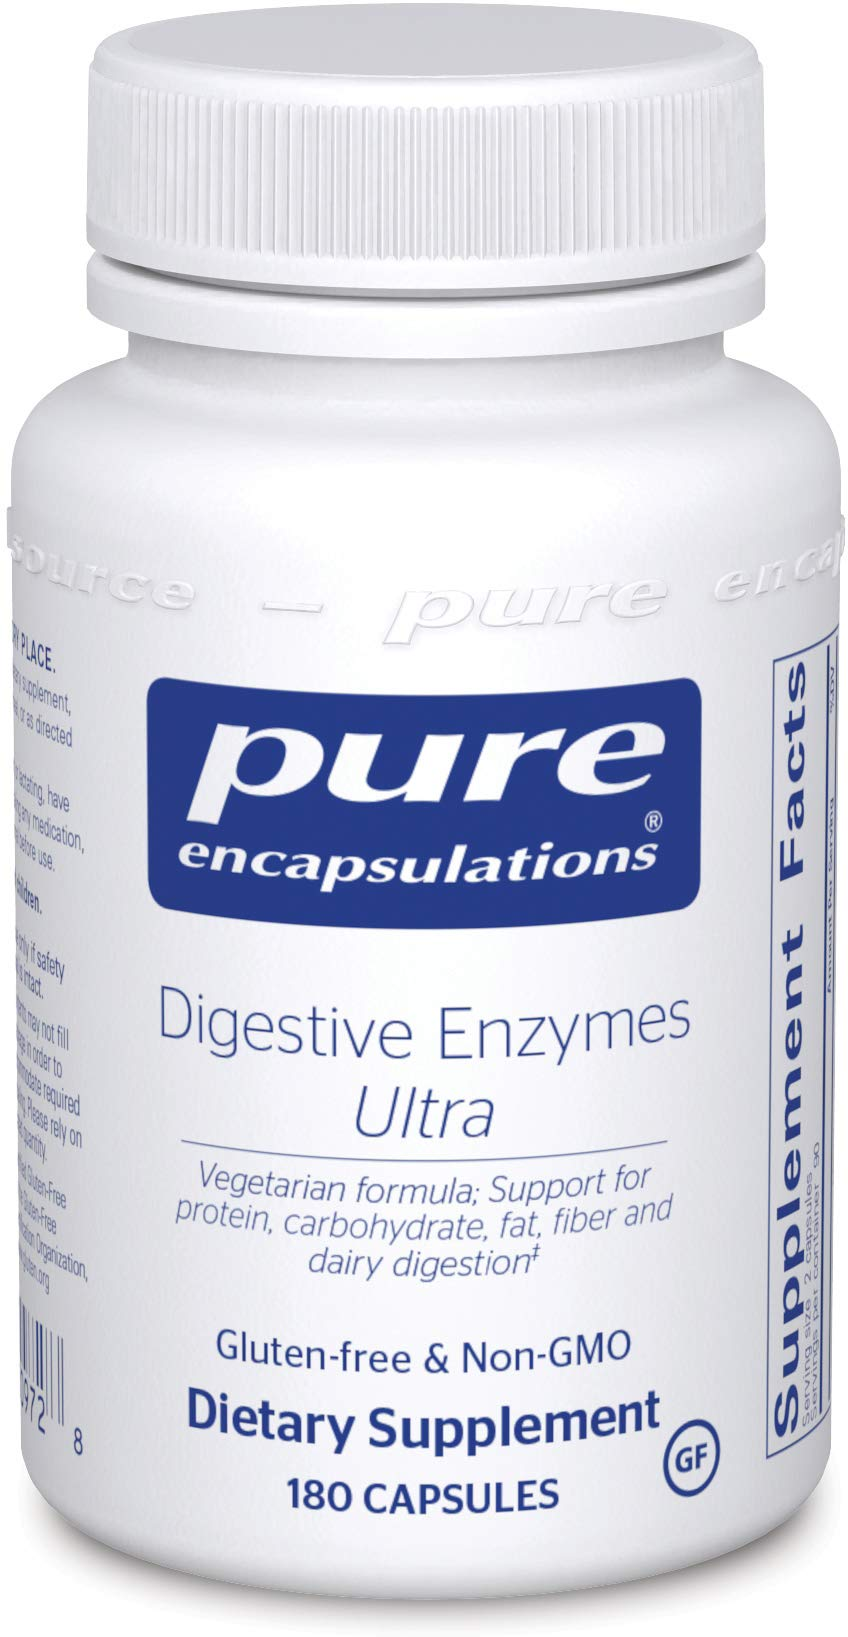 Pure Encapsulations Digestive Enzymes Ultra | Supplement to Aid in Breaking Down Fats, Proteins, and Carbohydrates for Digestion* | 180 Capsules